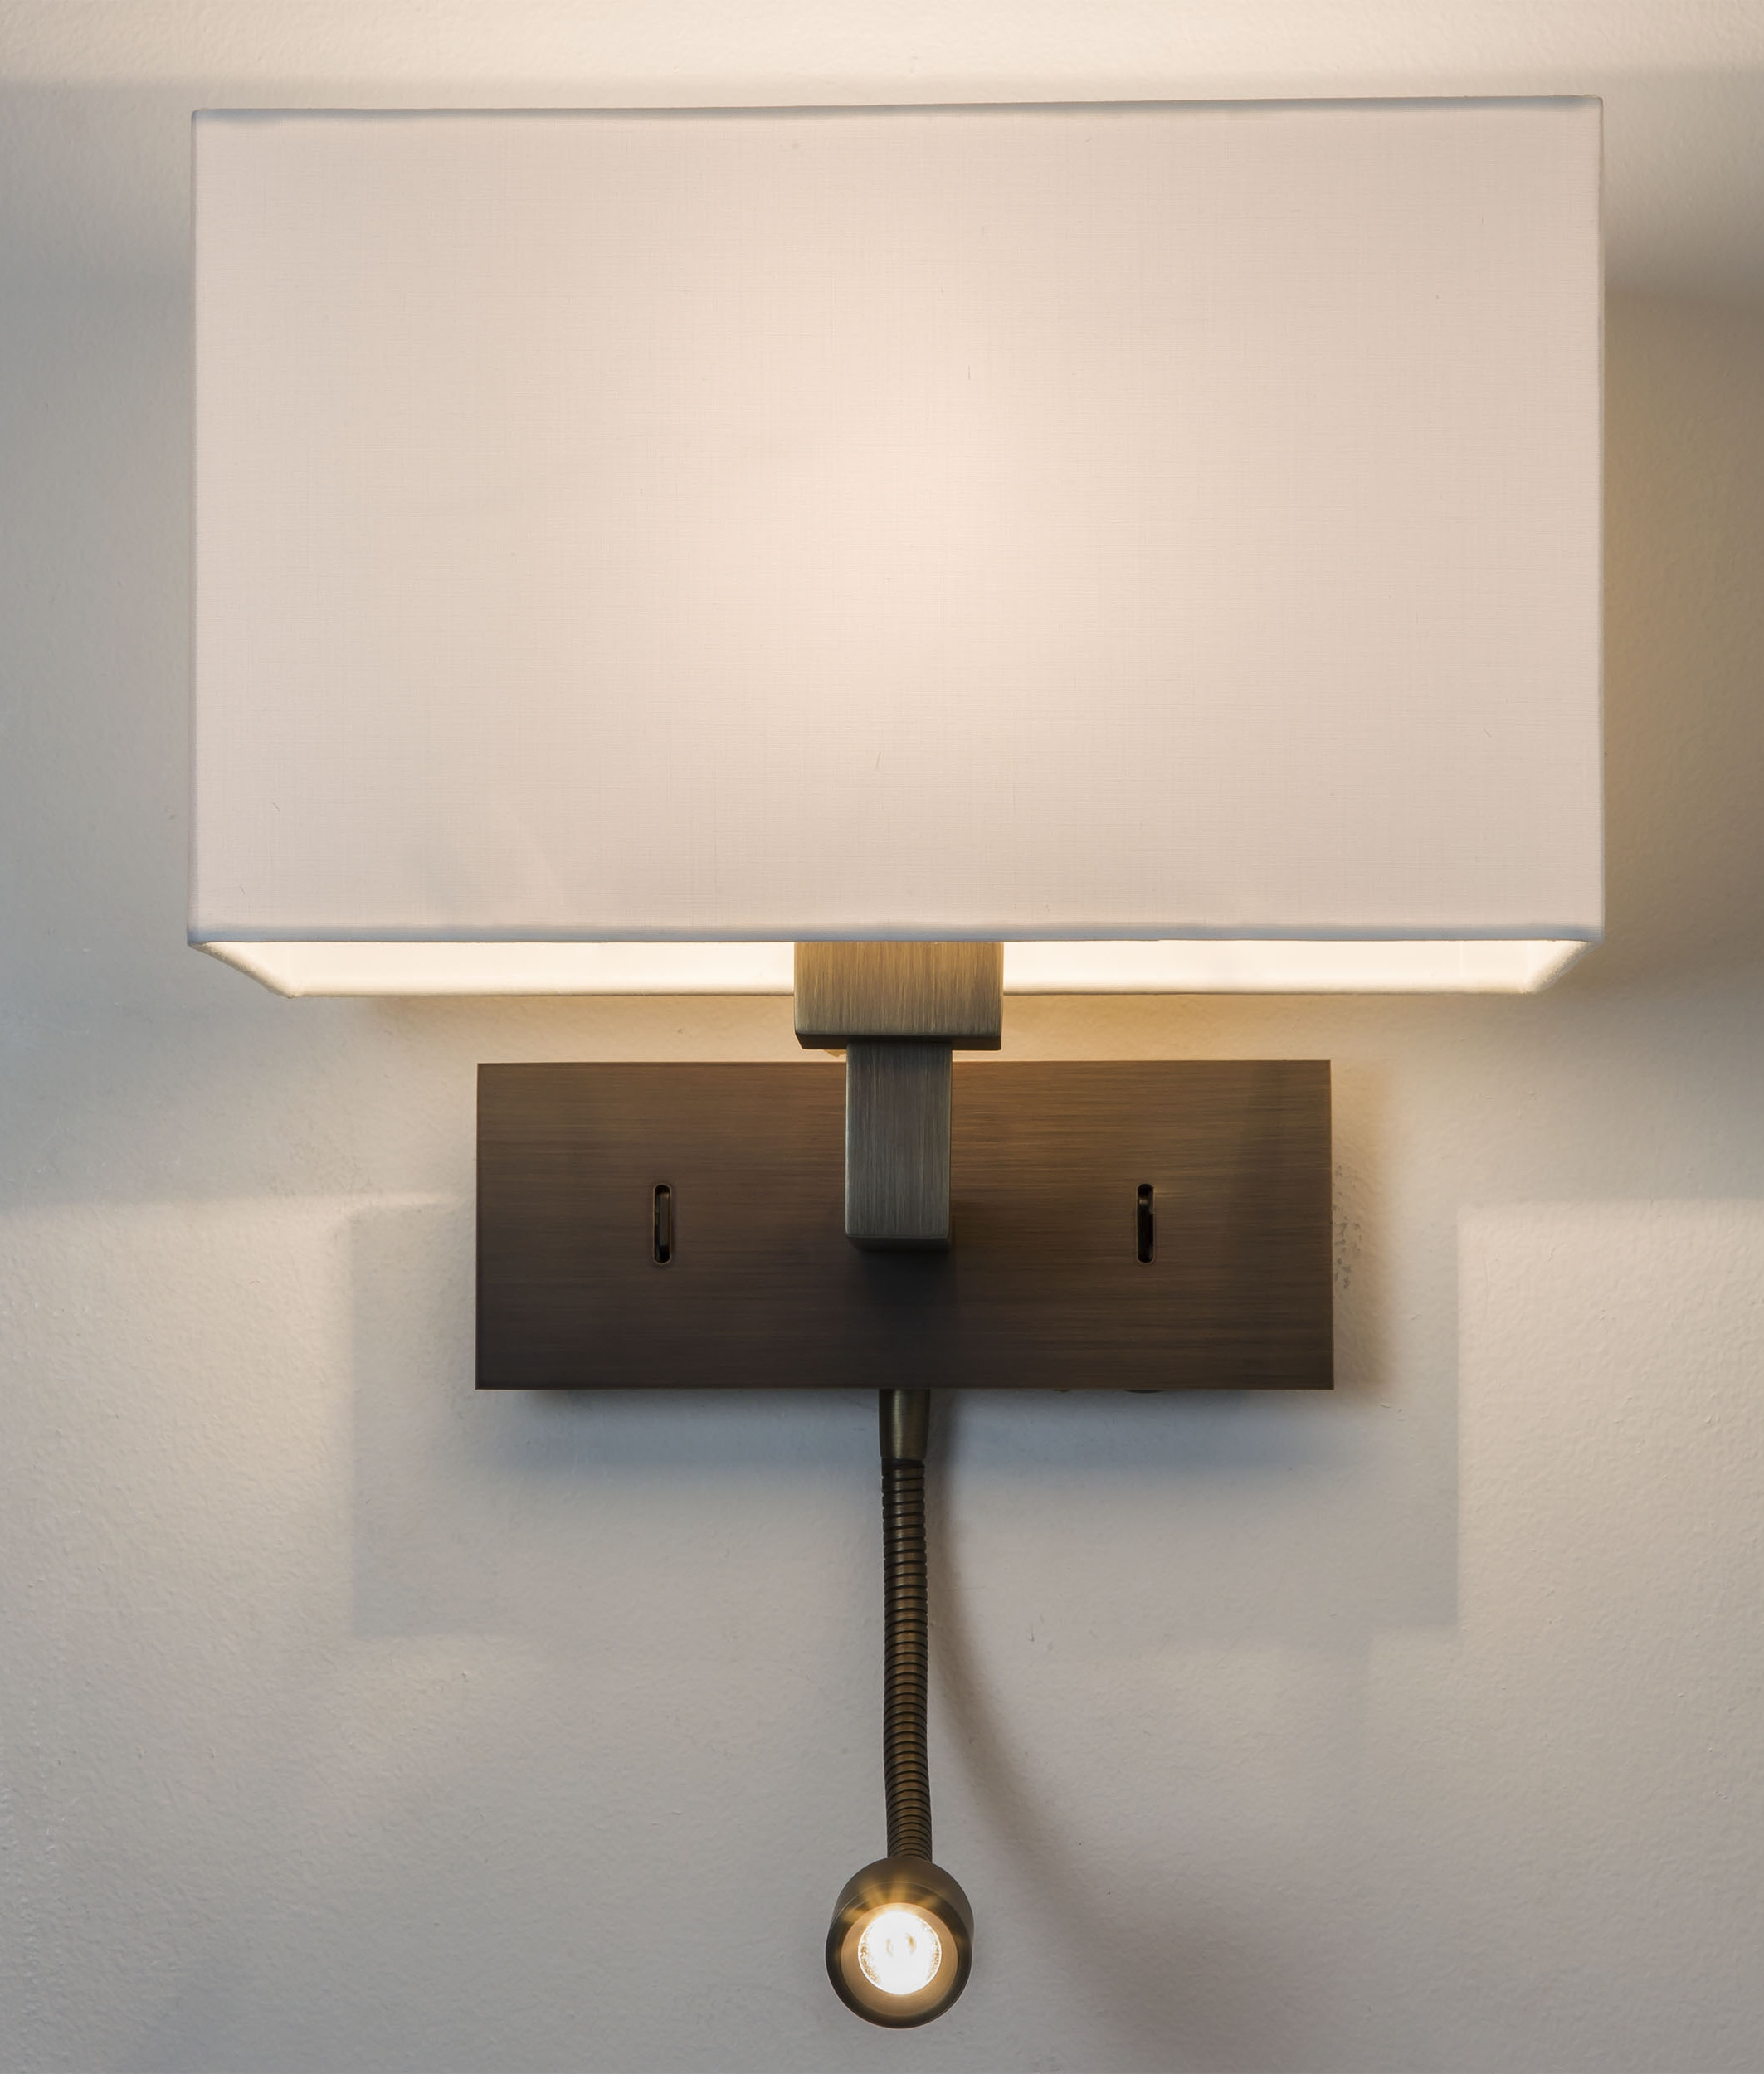 Led Wall Lamp Shades : Large Shade Wall Light with LED Arm